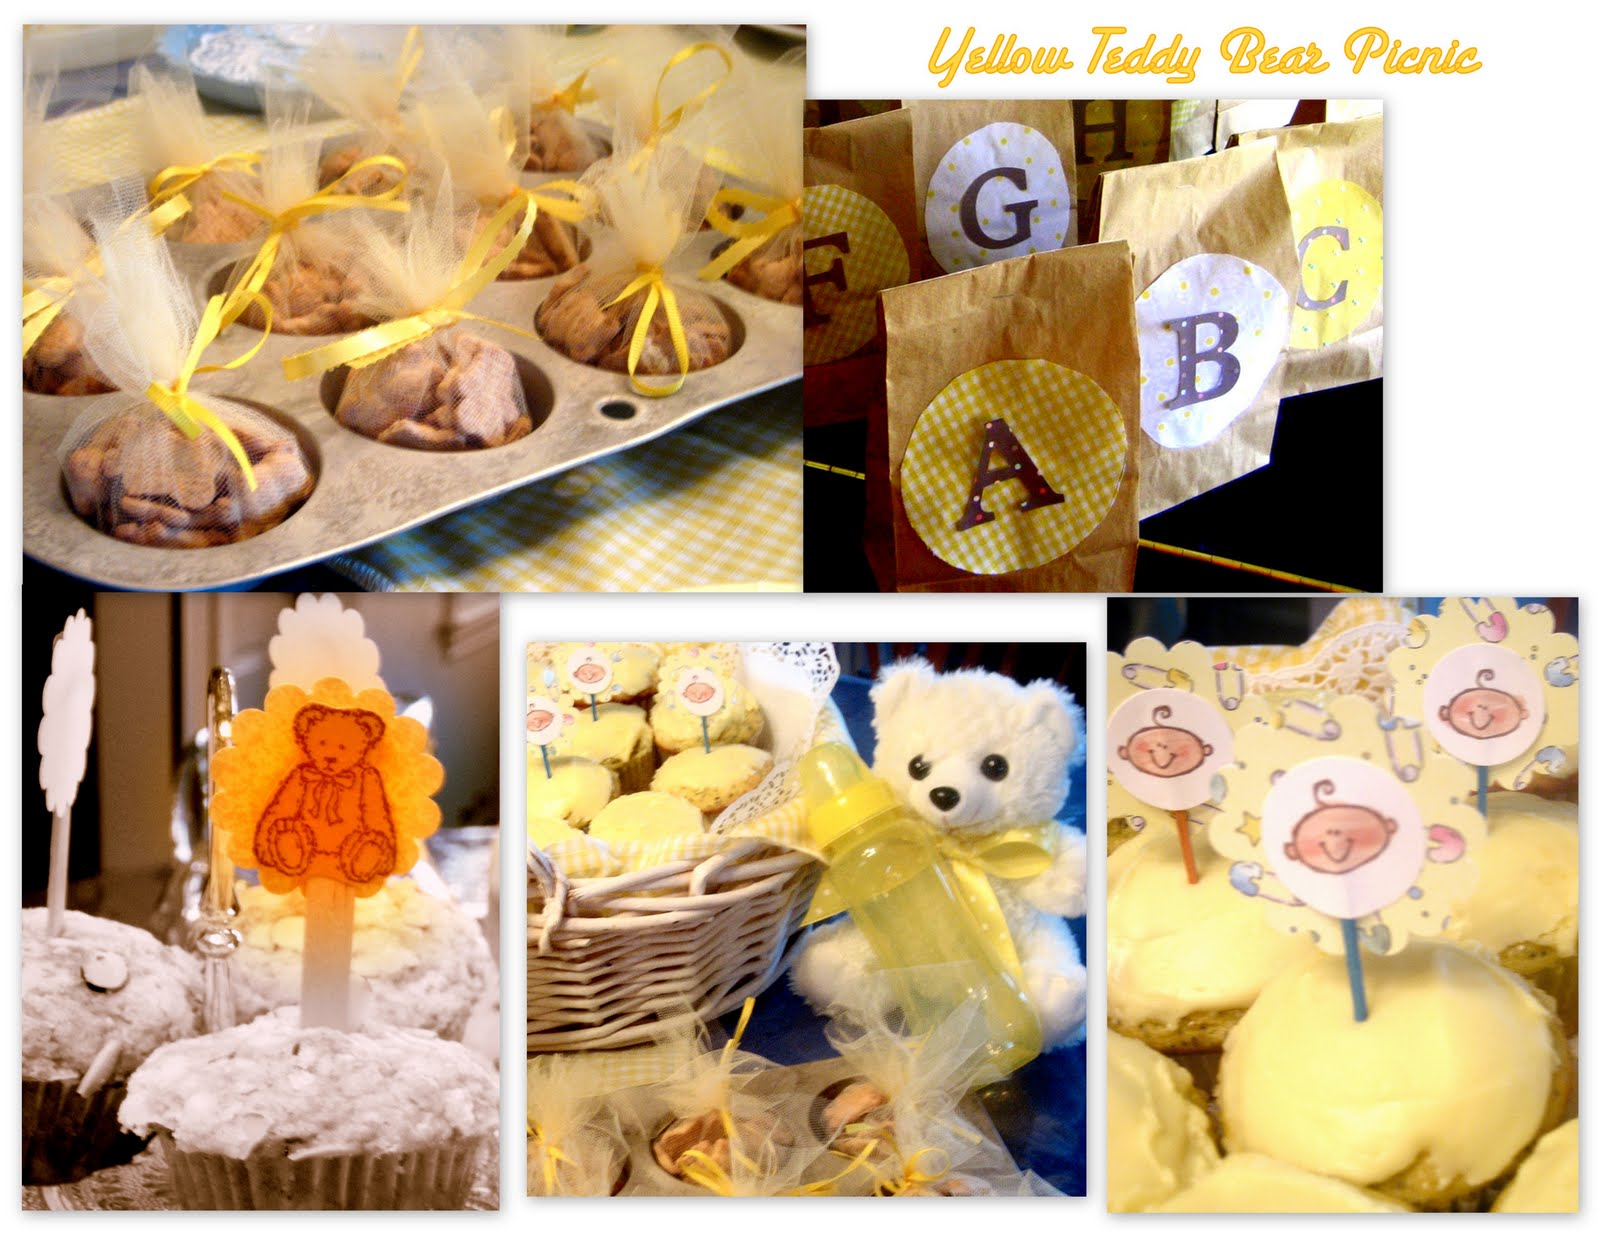 yesterday yellow teddy bear picnic baby shower